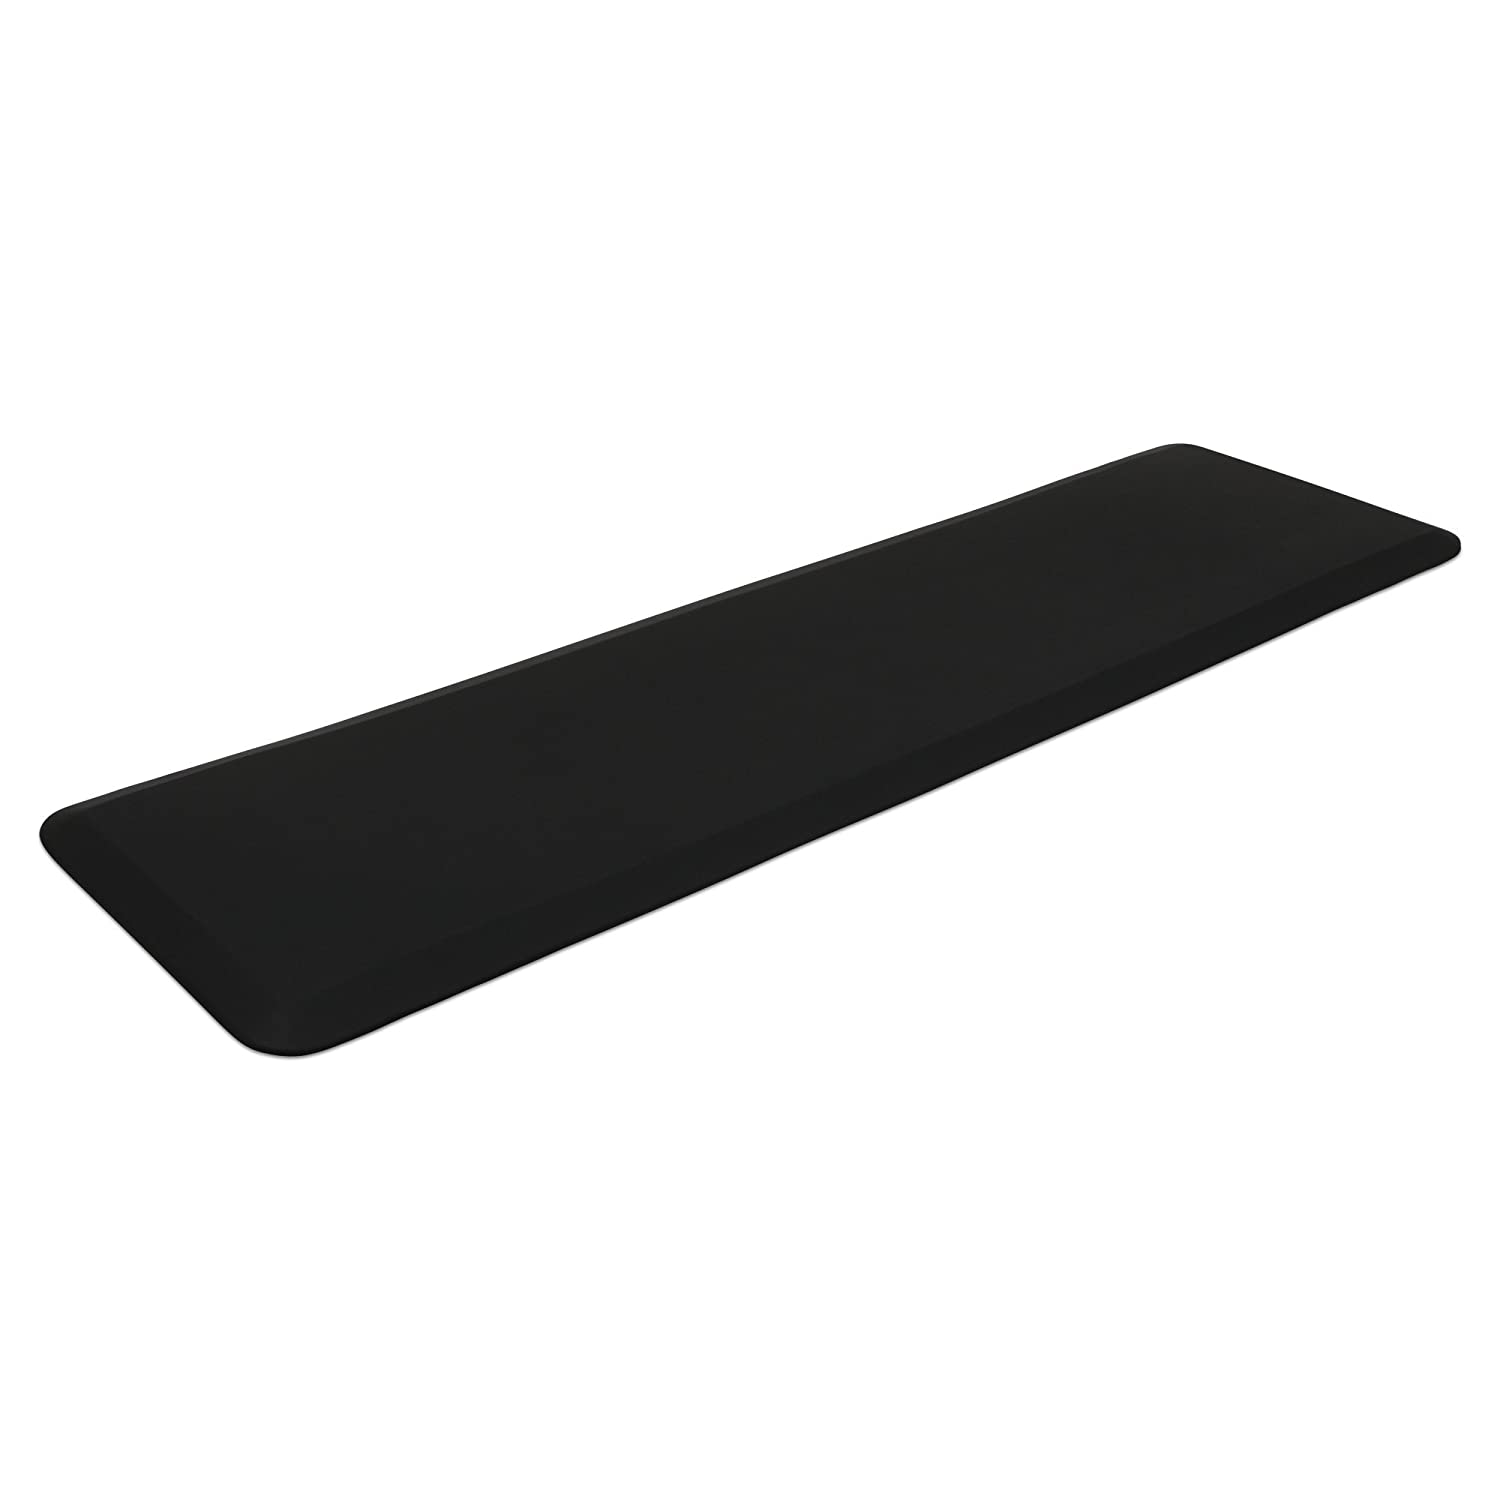 NewLife Anti Fatigue Nonslip Mat: Hard Floor Utility Mats for Garage, Patio and Kitchen - 20